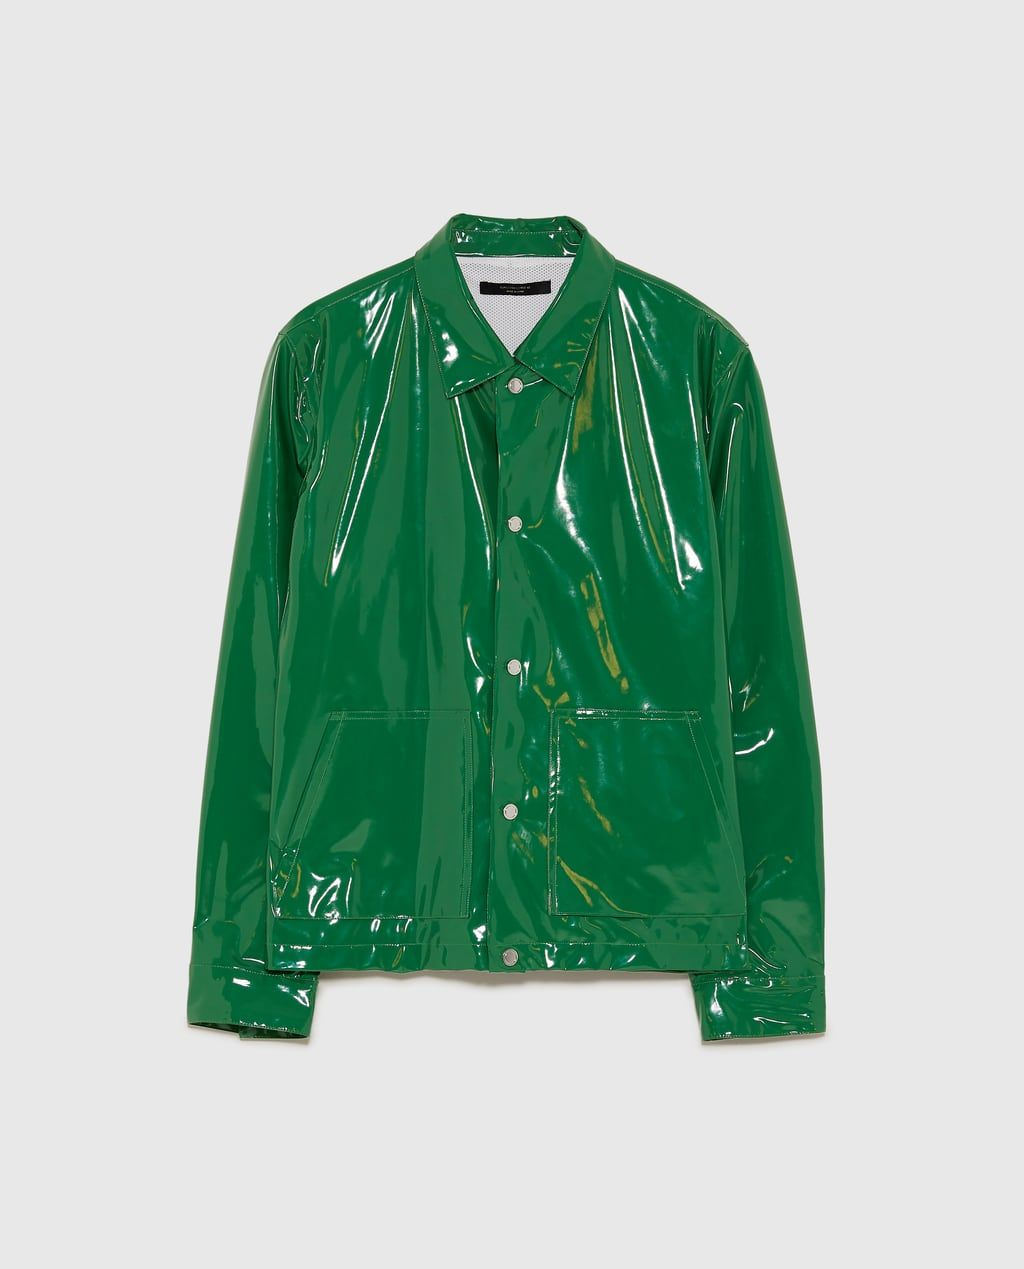 65ab1d4e Image 6 of SHINY GREEN JACKET from Zara | :|<- | Gucci outfits ...